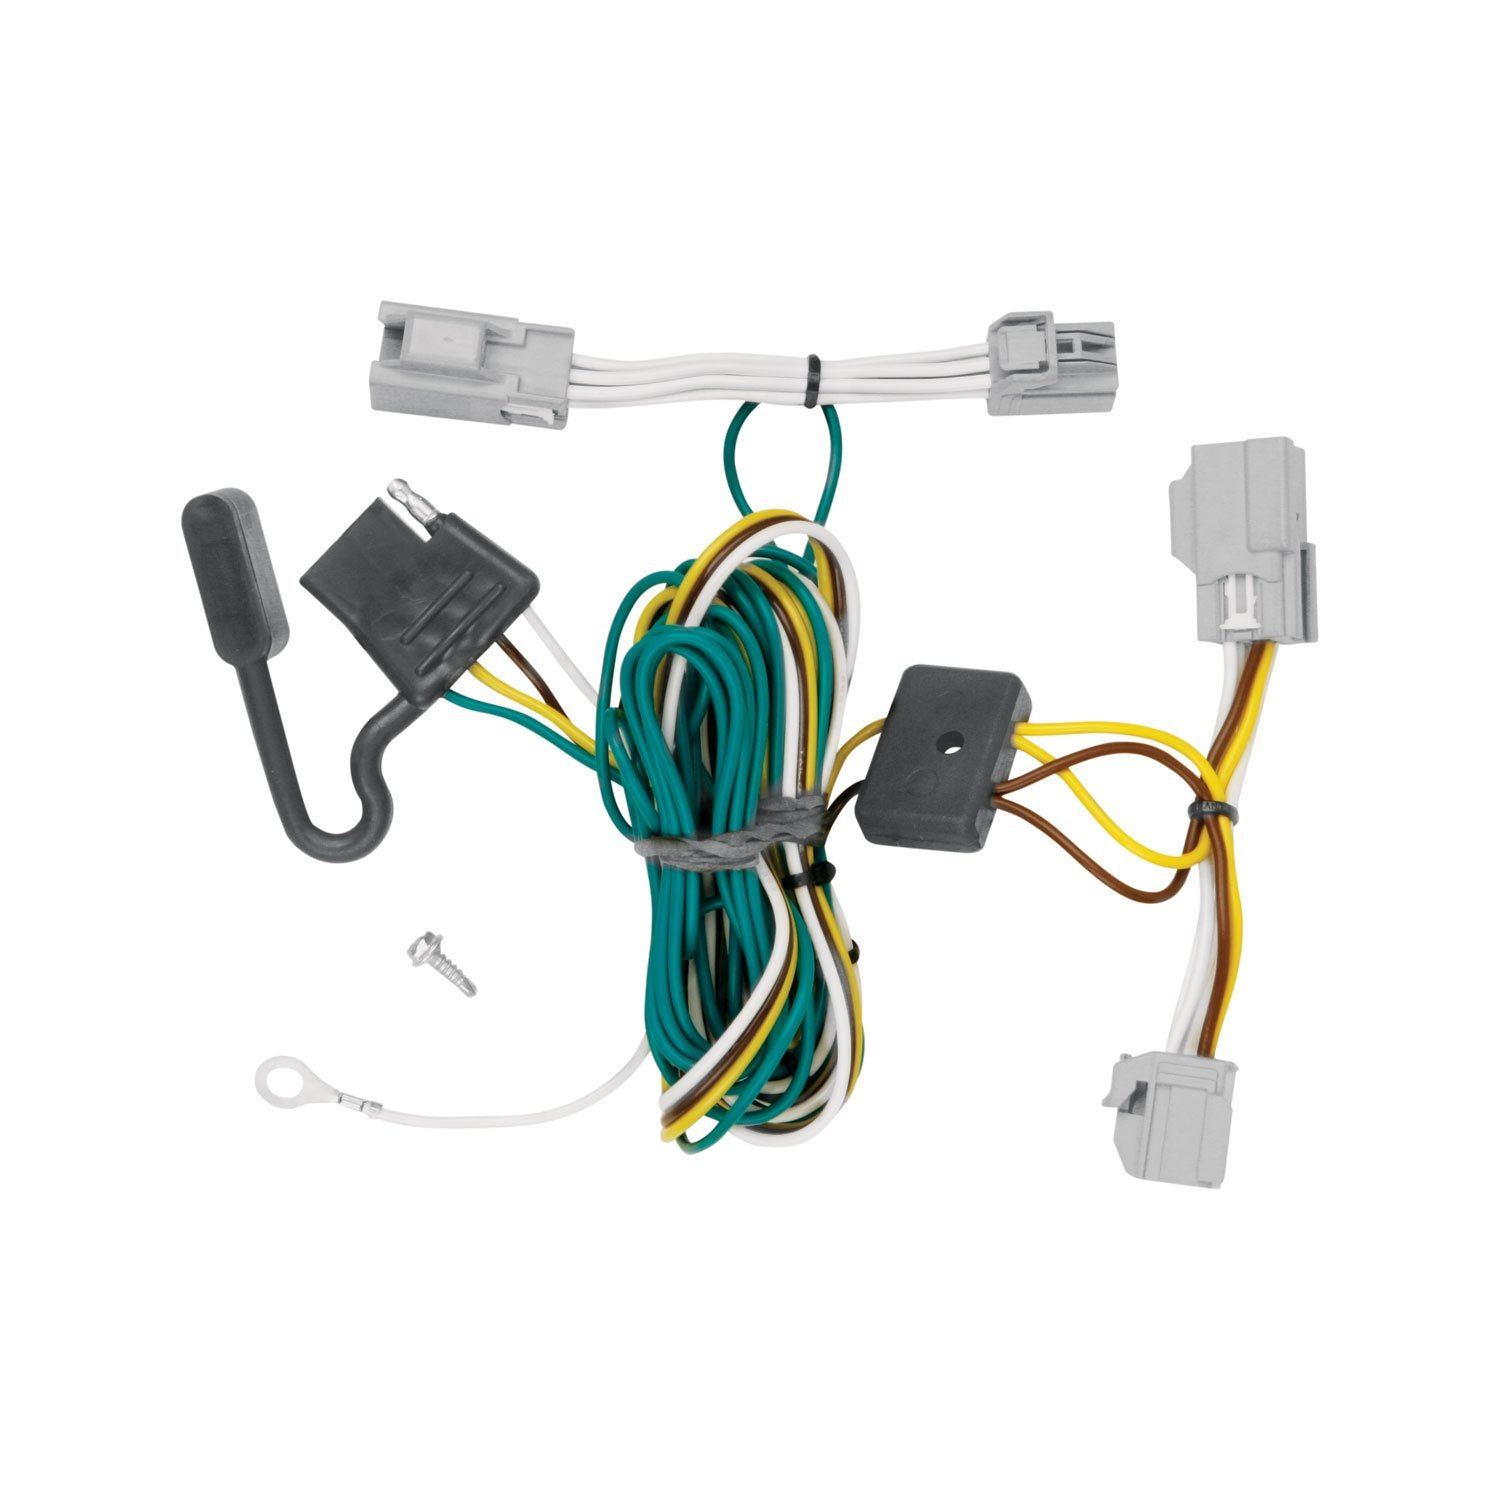 Tow Ready Wiring Harness Electrical Diagram Schematics 20122016 Dodge Journey Curt T Connector 56109 118447 Assembly One Connectors Products